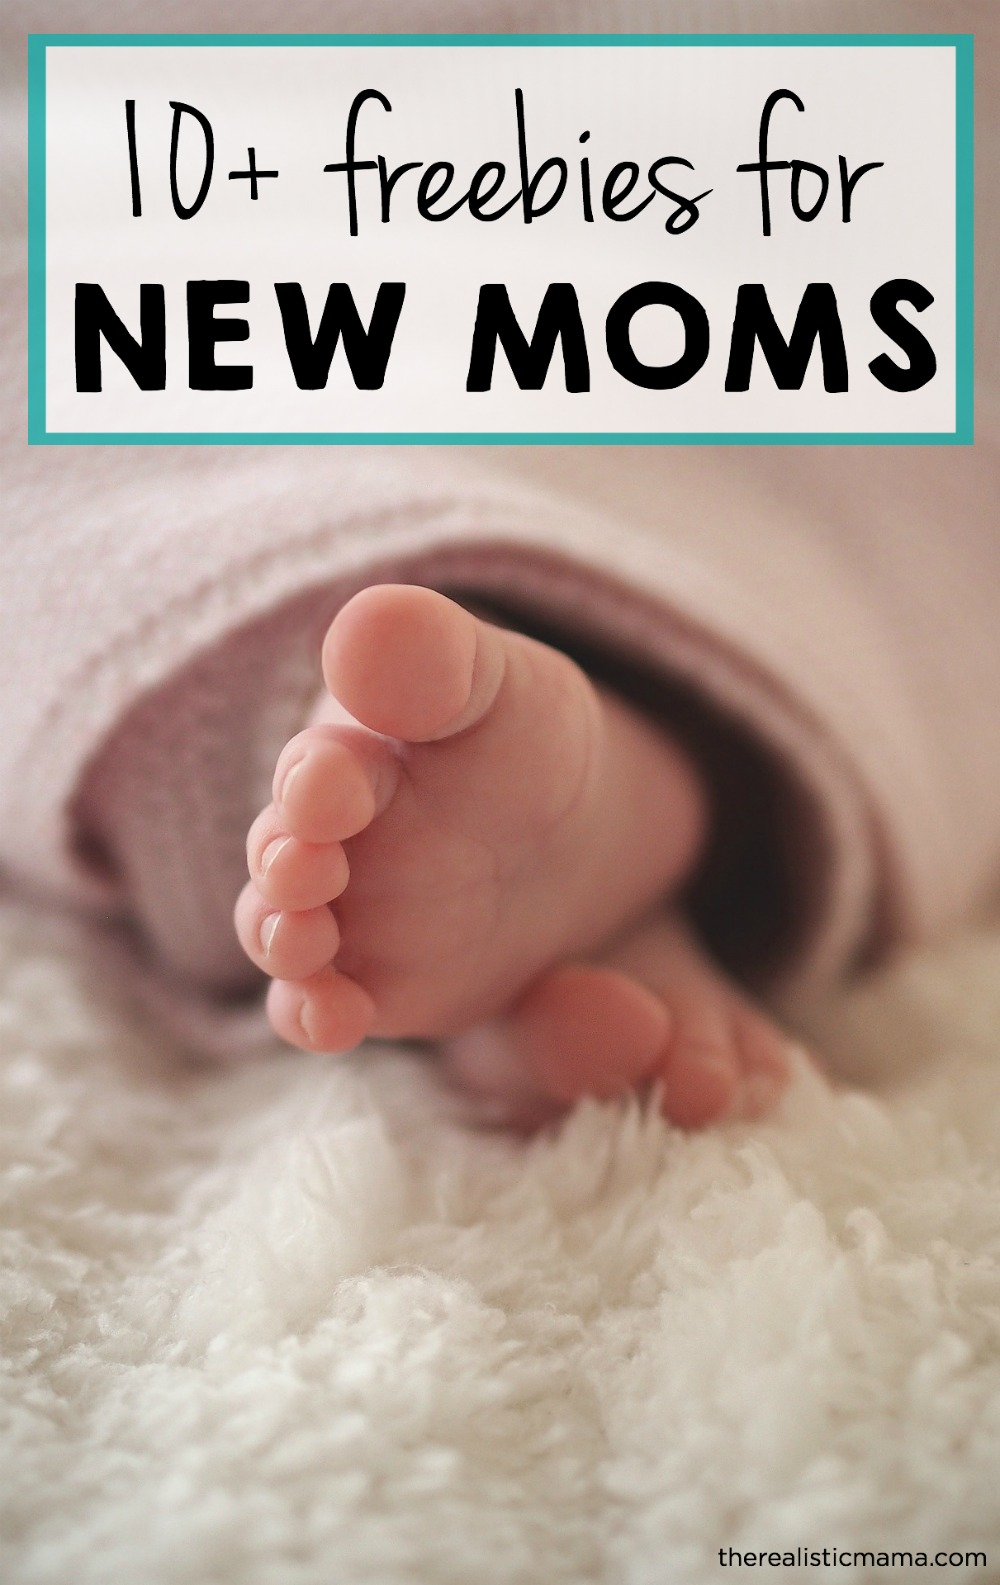 Snagging these! 10+ Freebies for New Moms